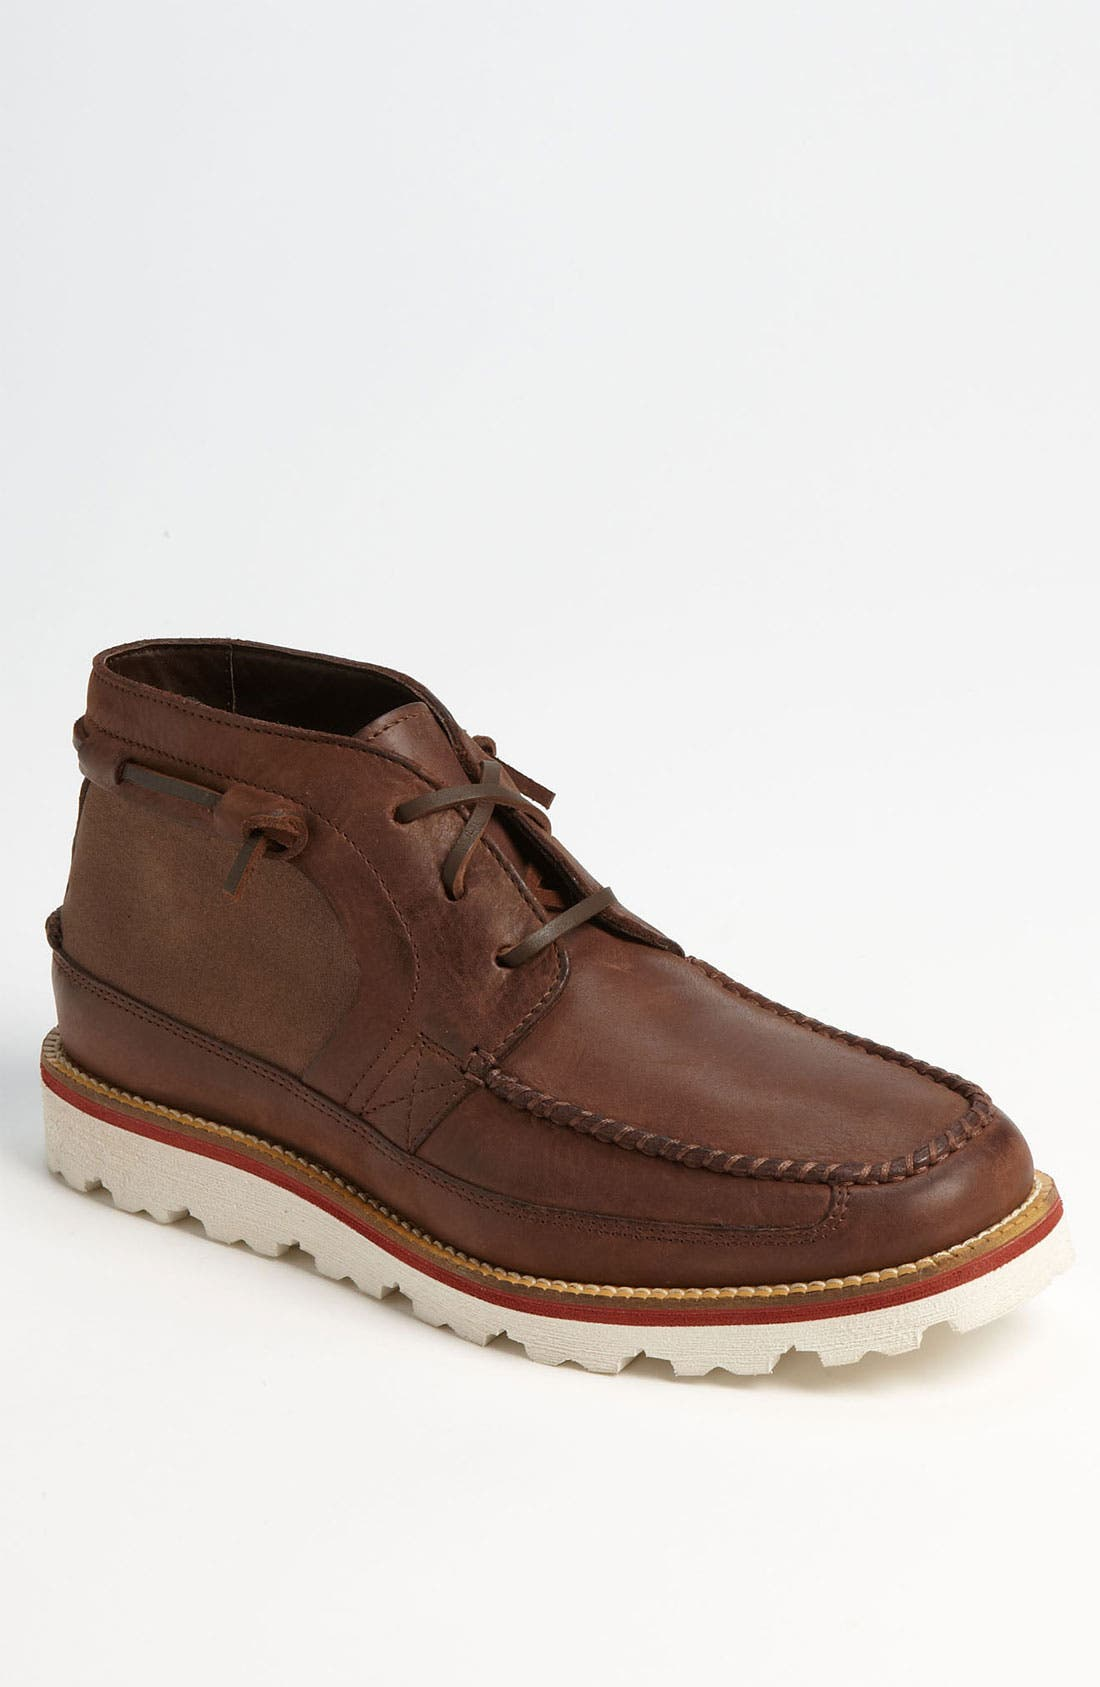 Main Image - Cole Haan 'Air Bretton' Chukka Boot